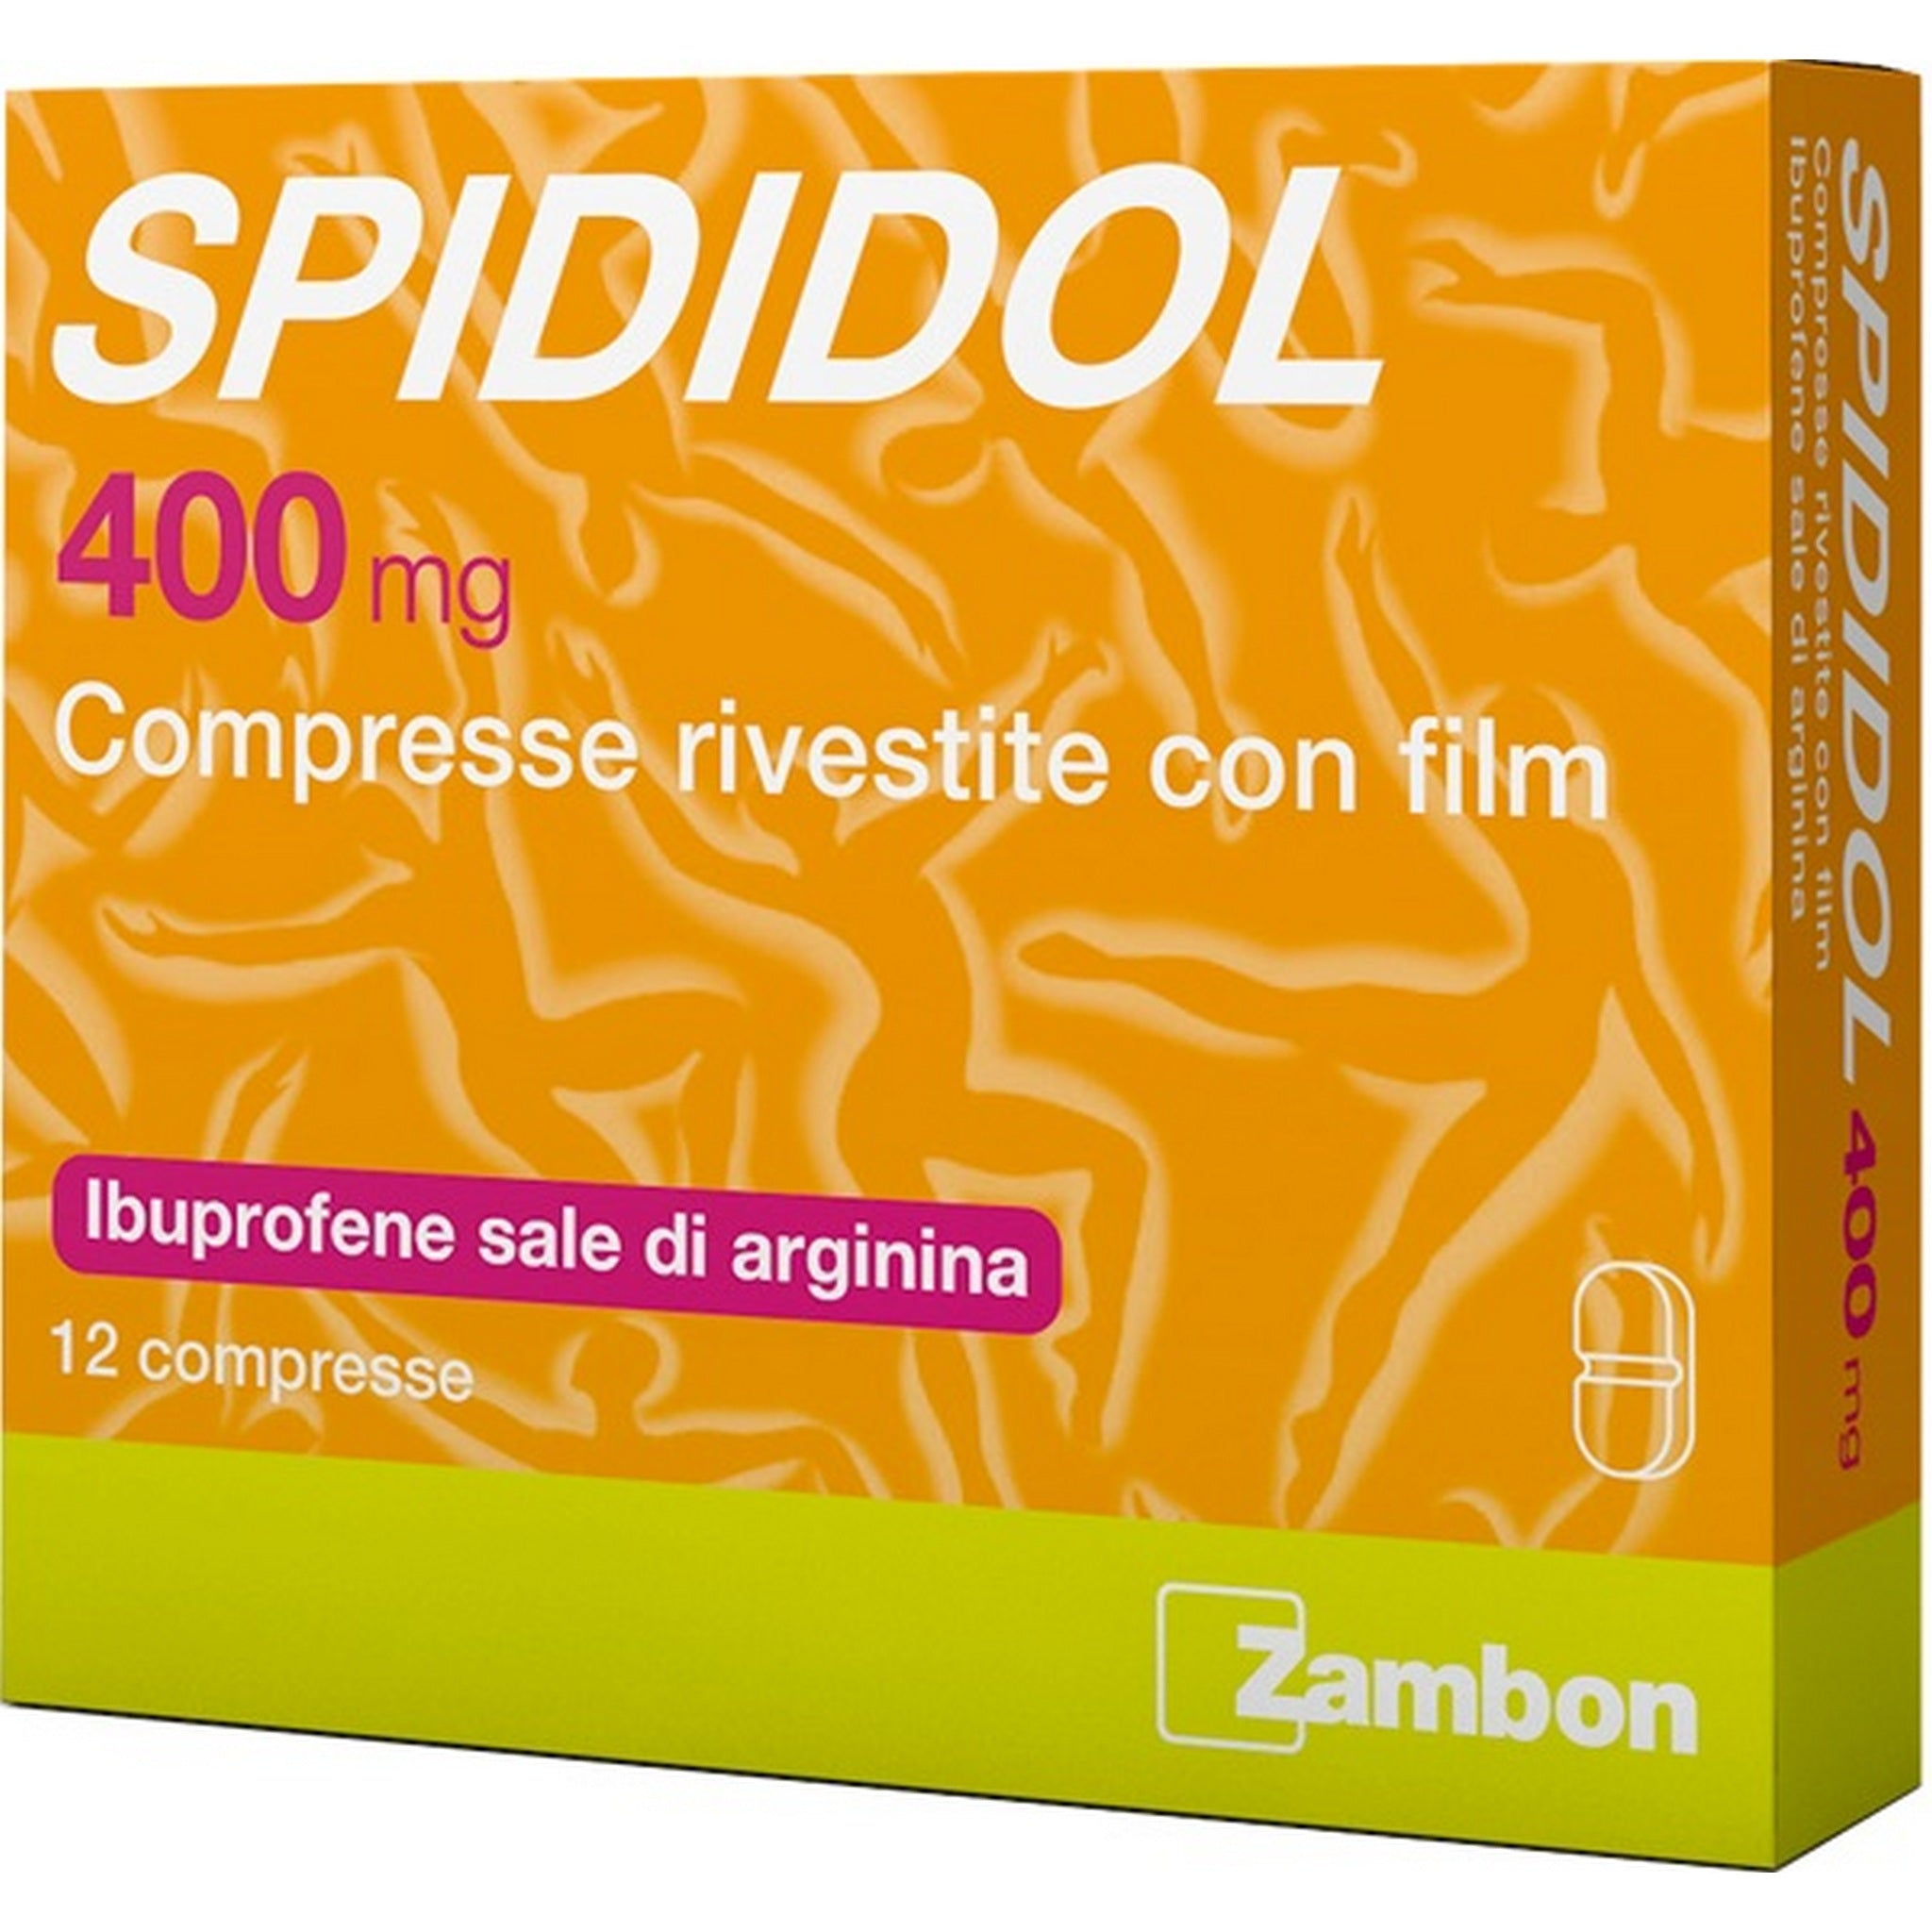 SPIDIDOL 12 COMPRESSE RIV 400MG